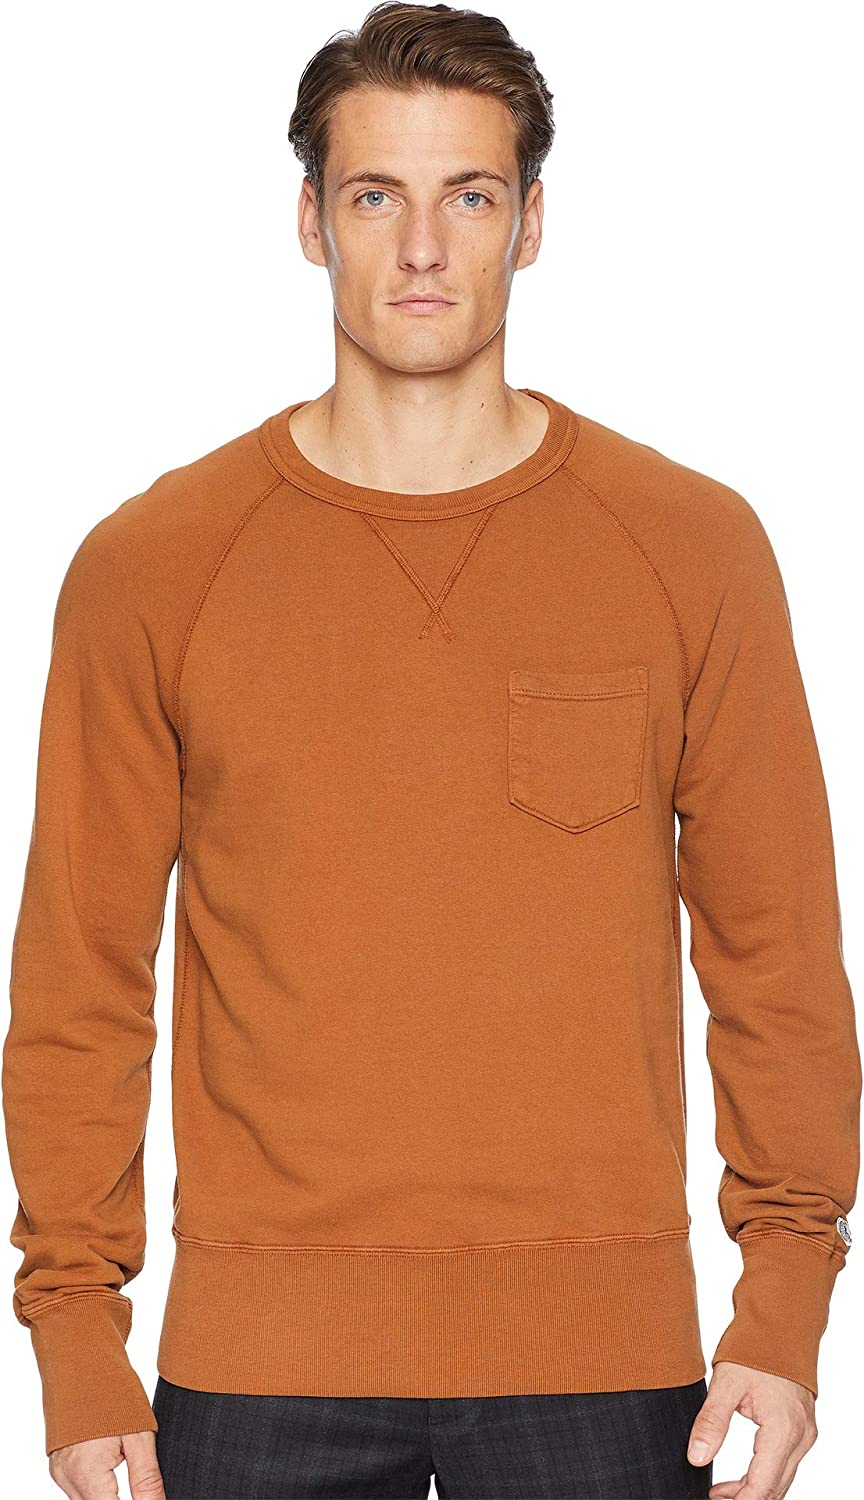 Todd Snyder + Champion Men's Pocket Sweatshirt KN91808000